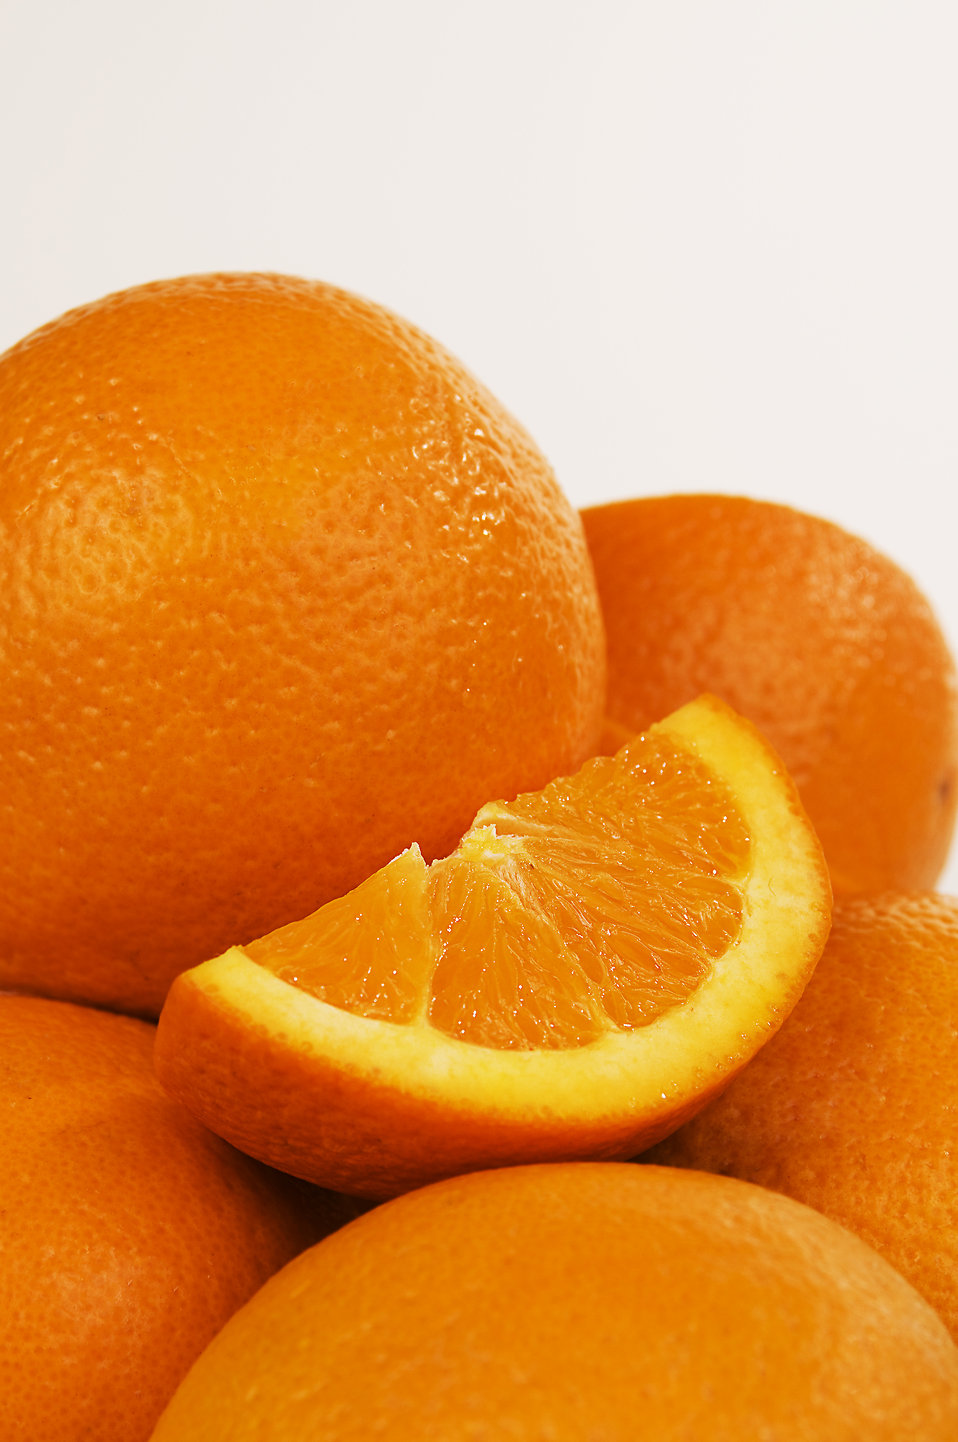 Oranges Free Stock Photo A Bowl Filled With Oranges